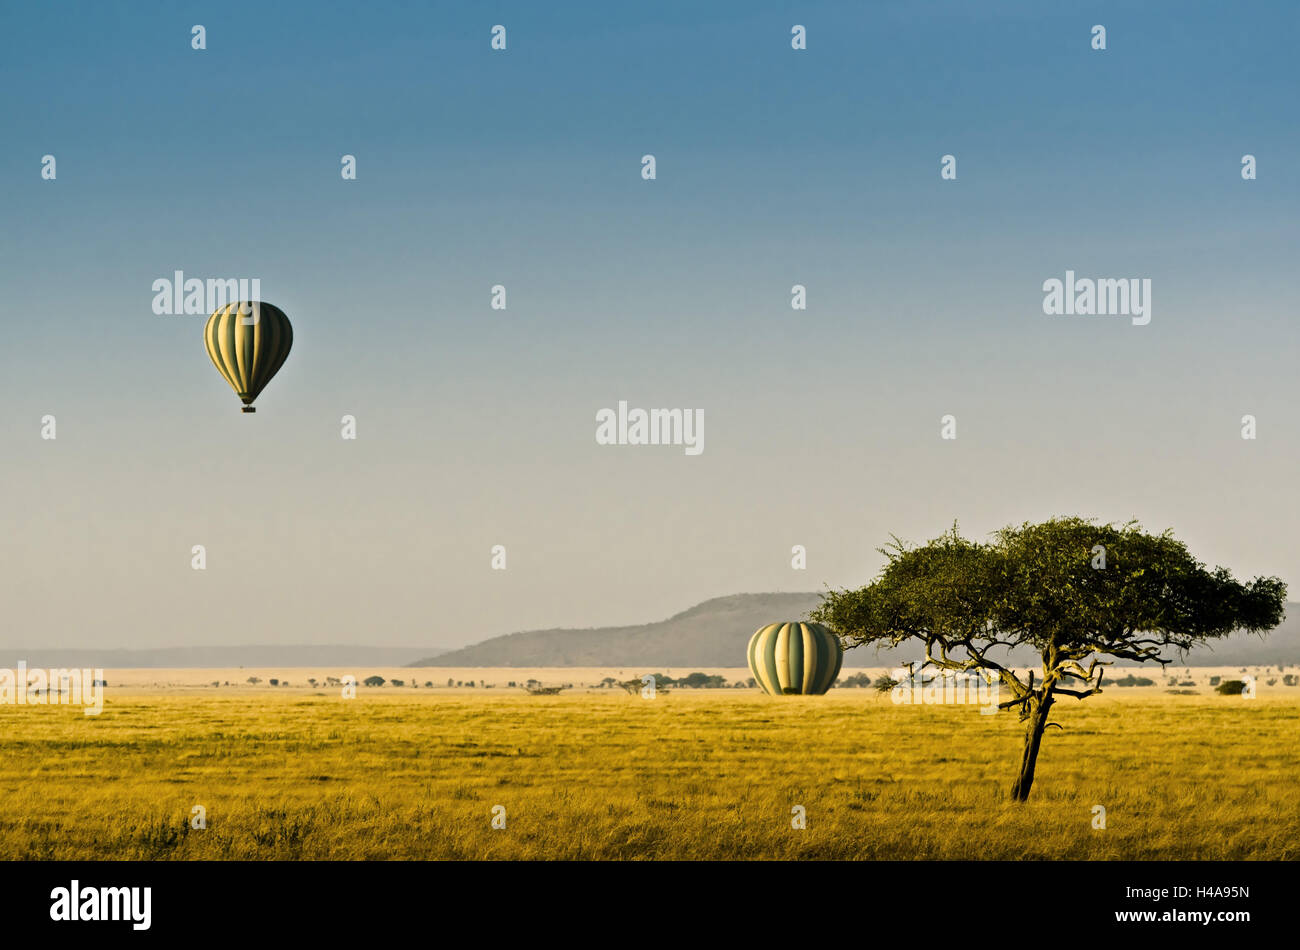 Africa, Tanzania, East Africa, Serengeti, national park, balloon, hot-air balloon, balloon ride, - Stock Image